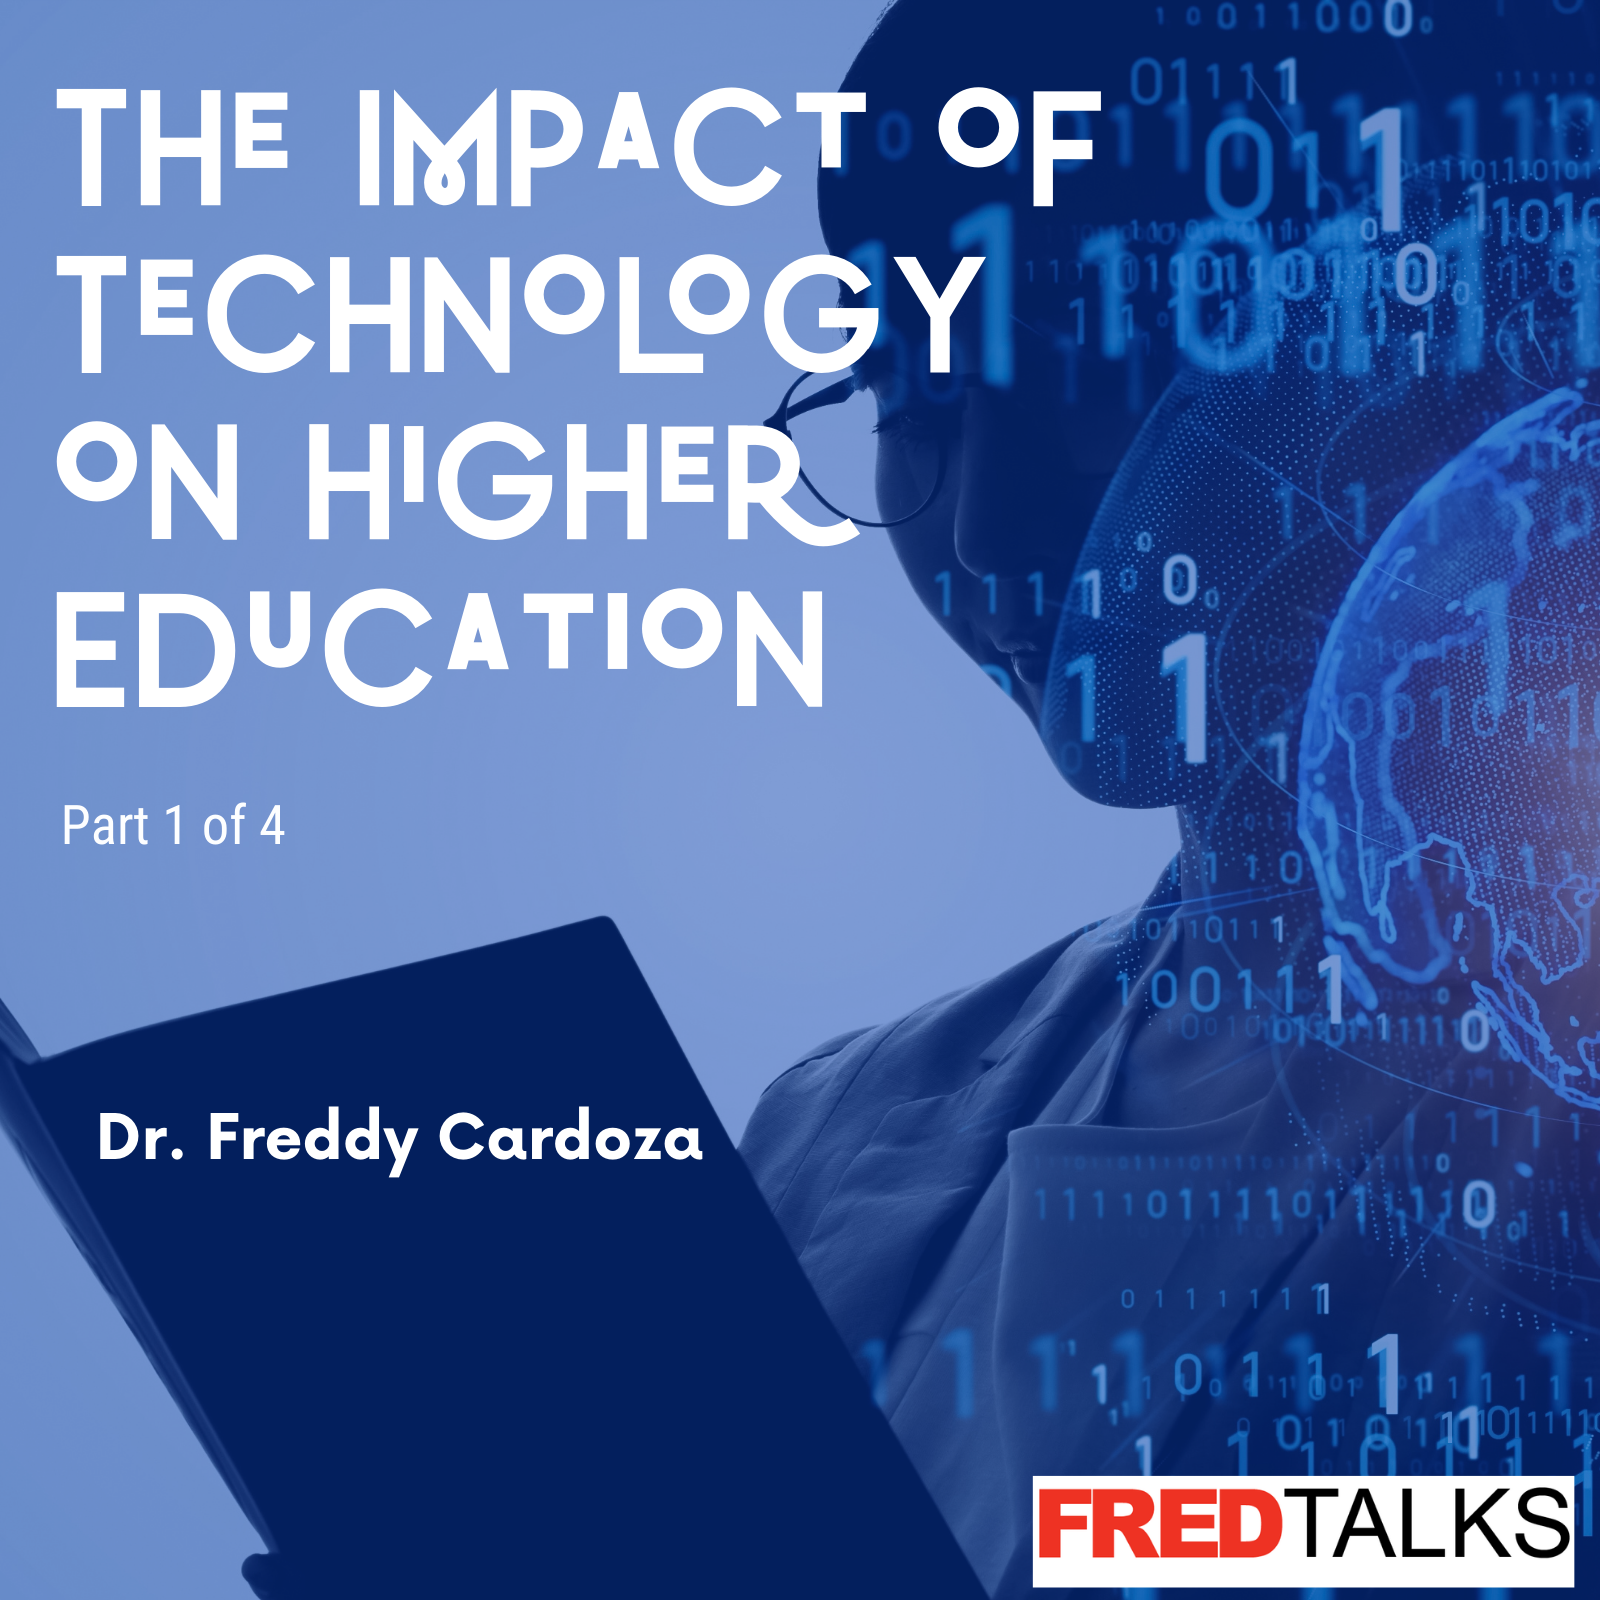 The Impact of Technology on Higher Education